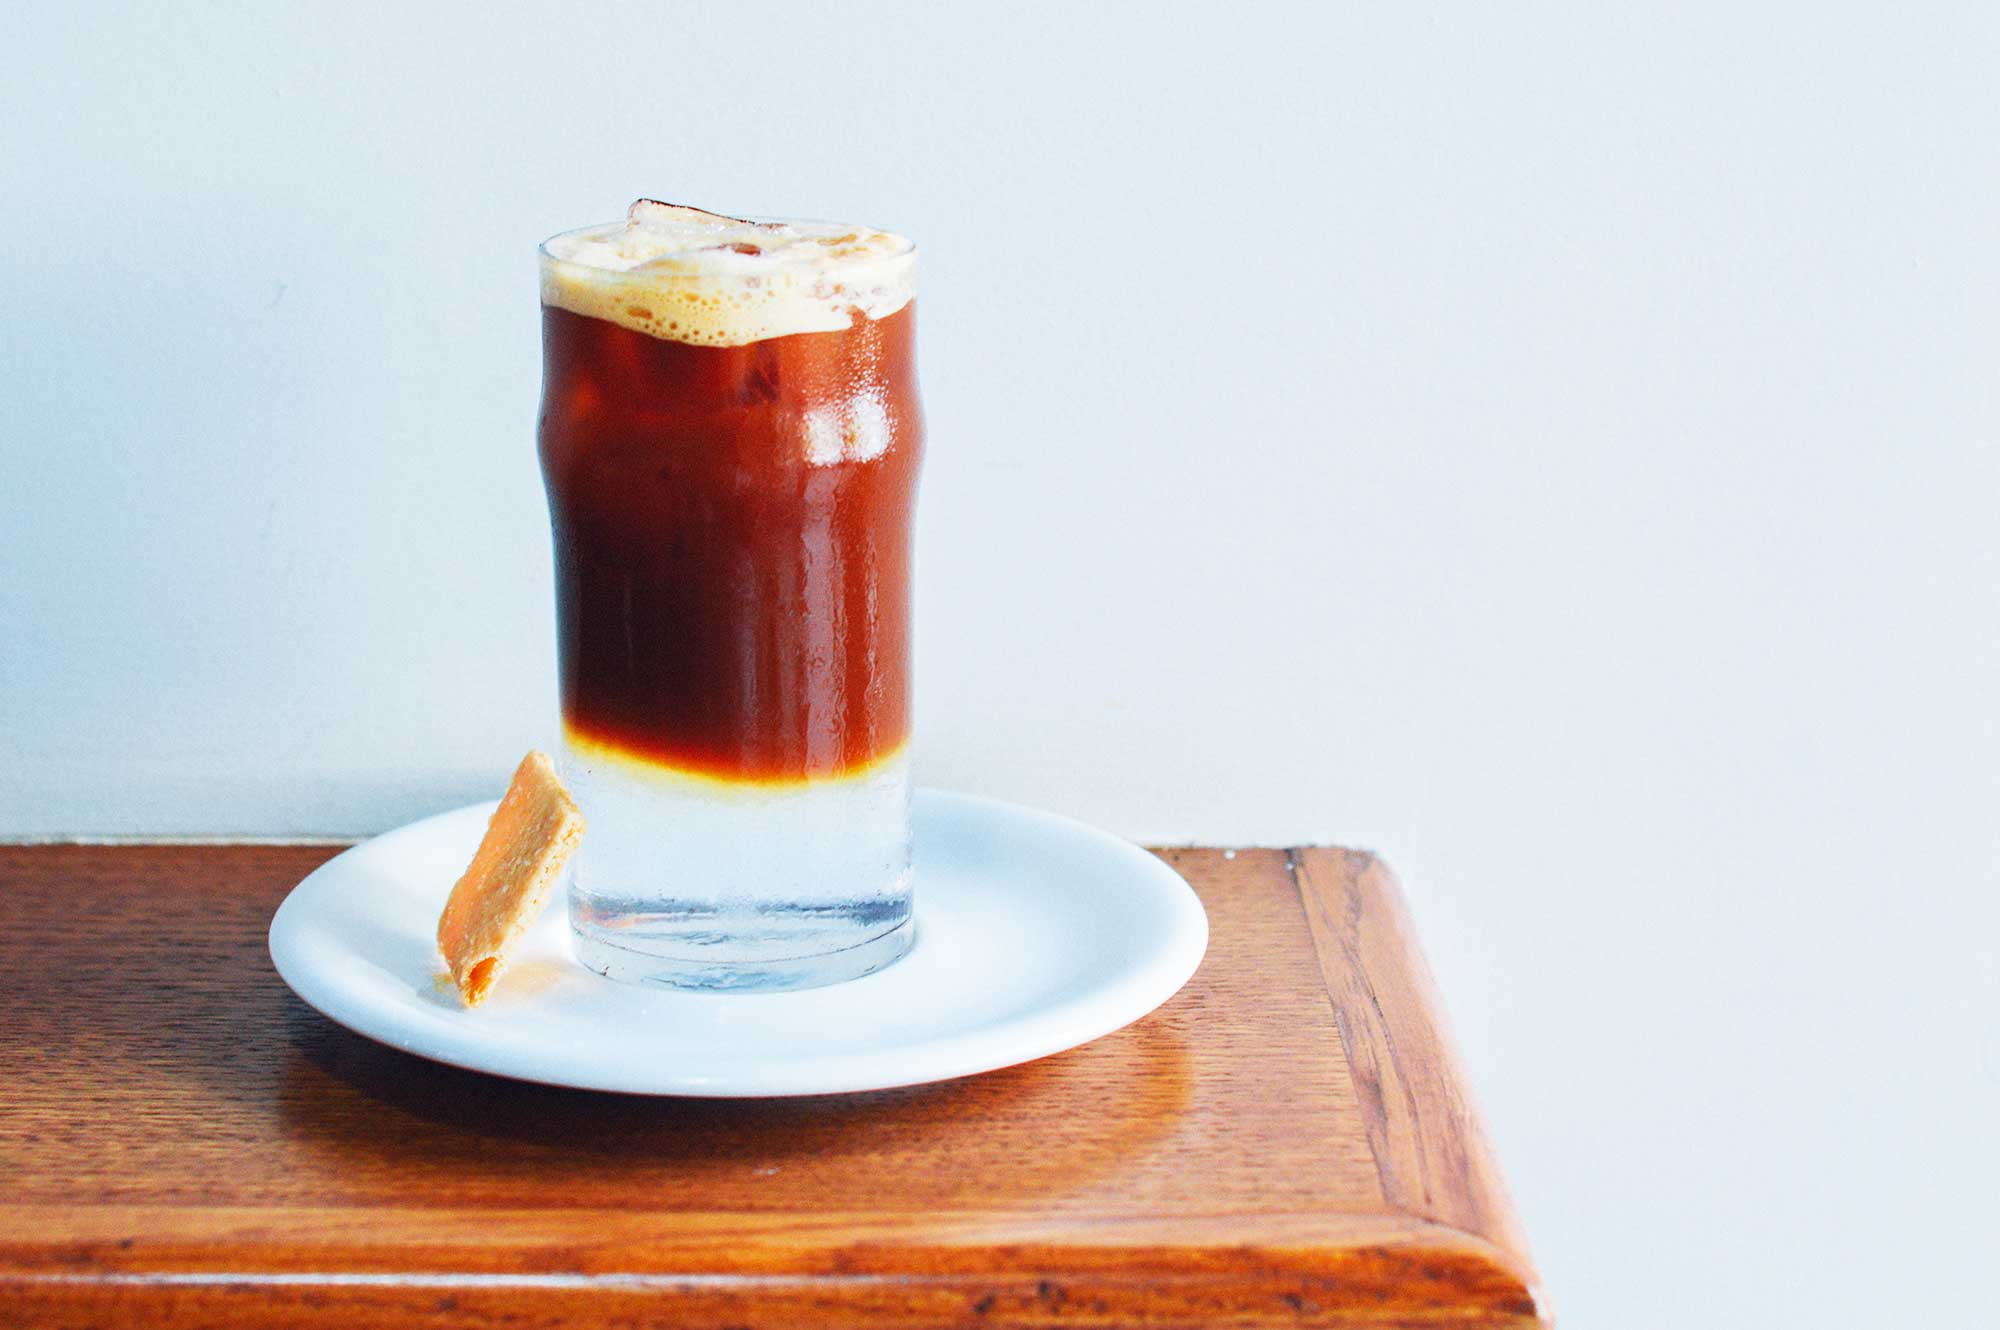 Meet the Espresso Tonic, Iced Coffee's Bubbly New Cousin